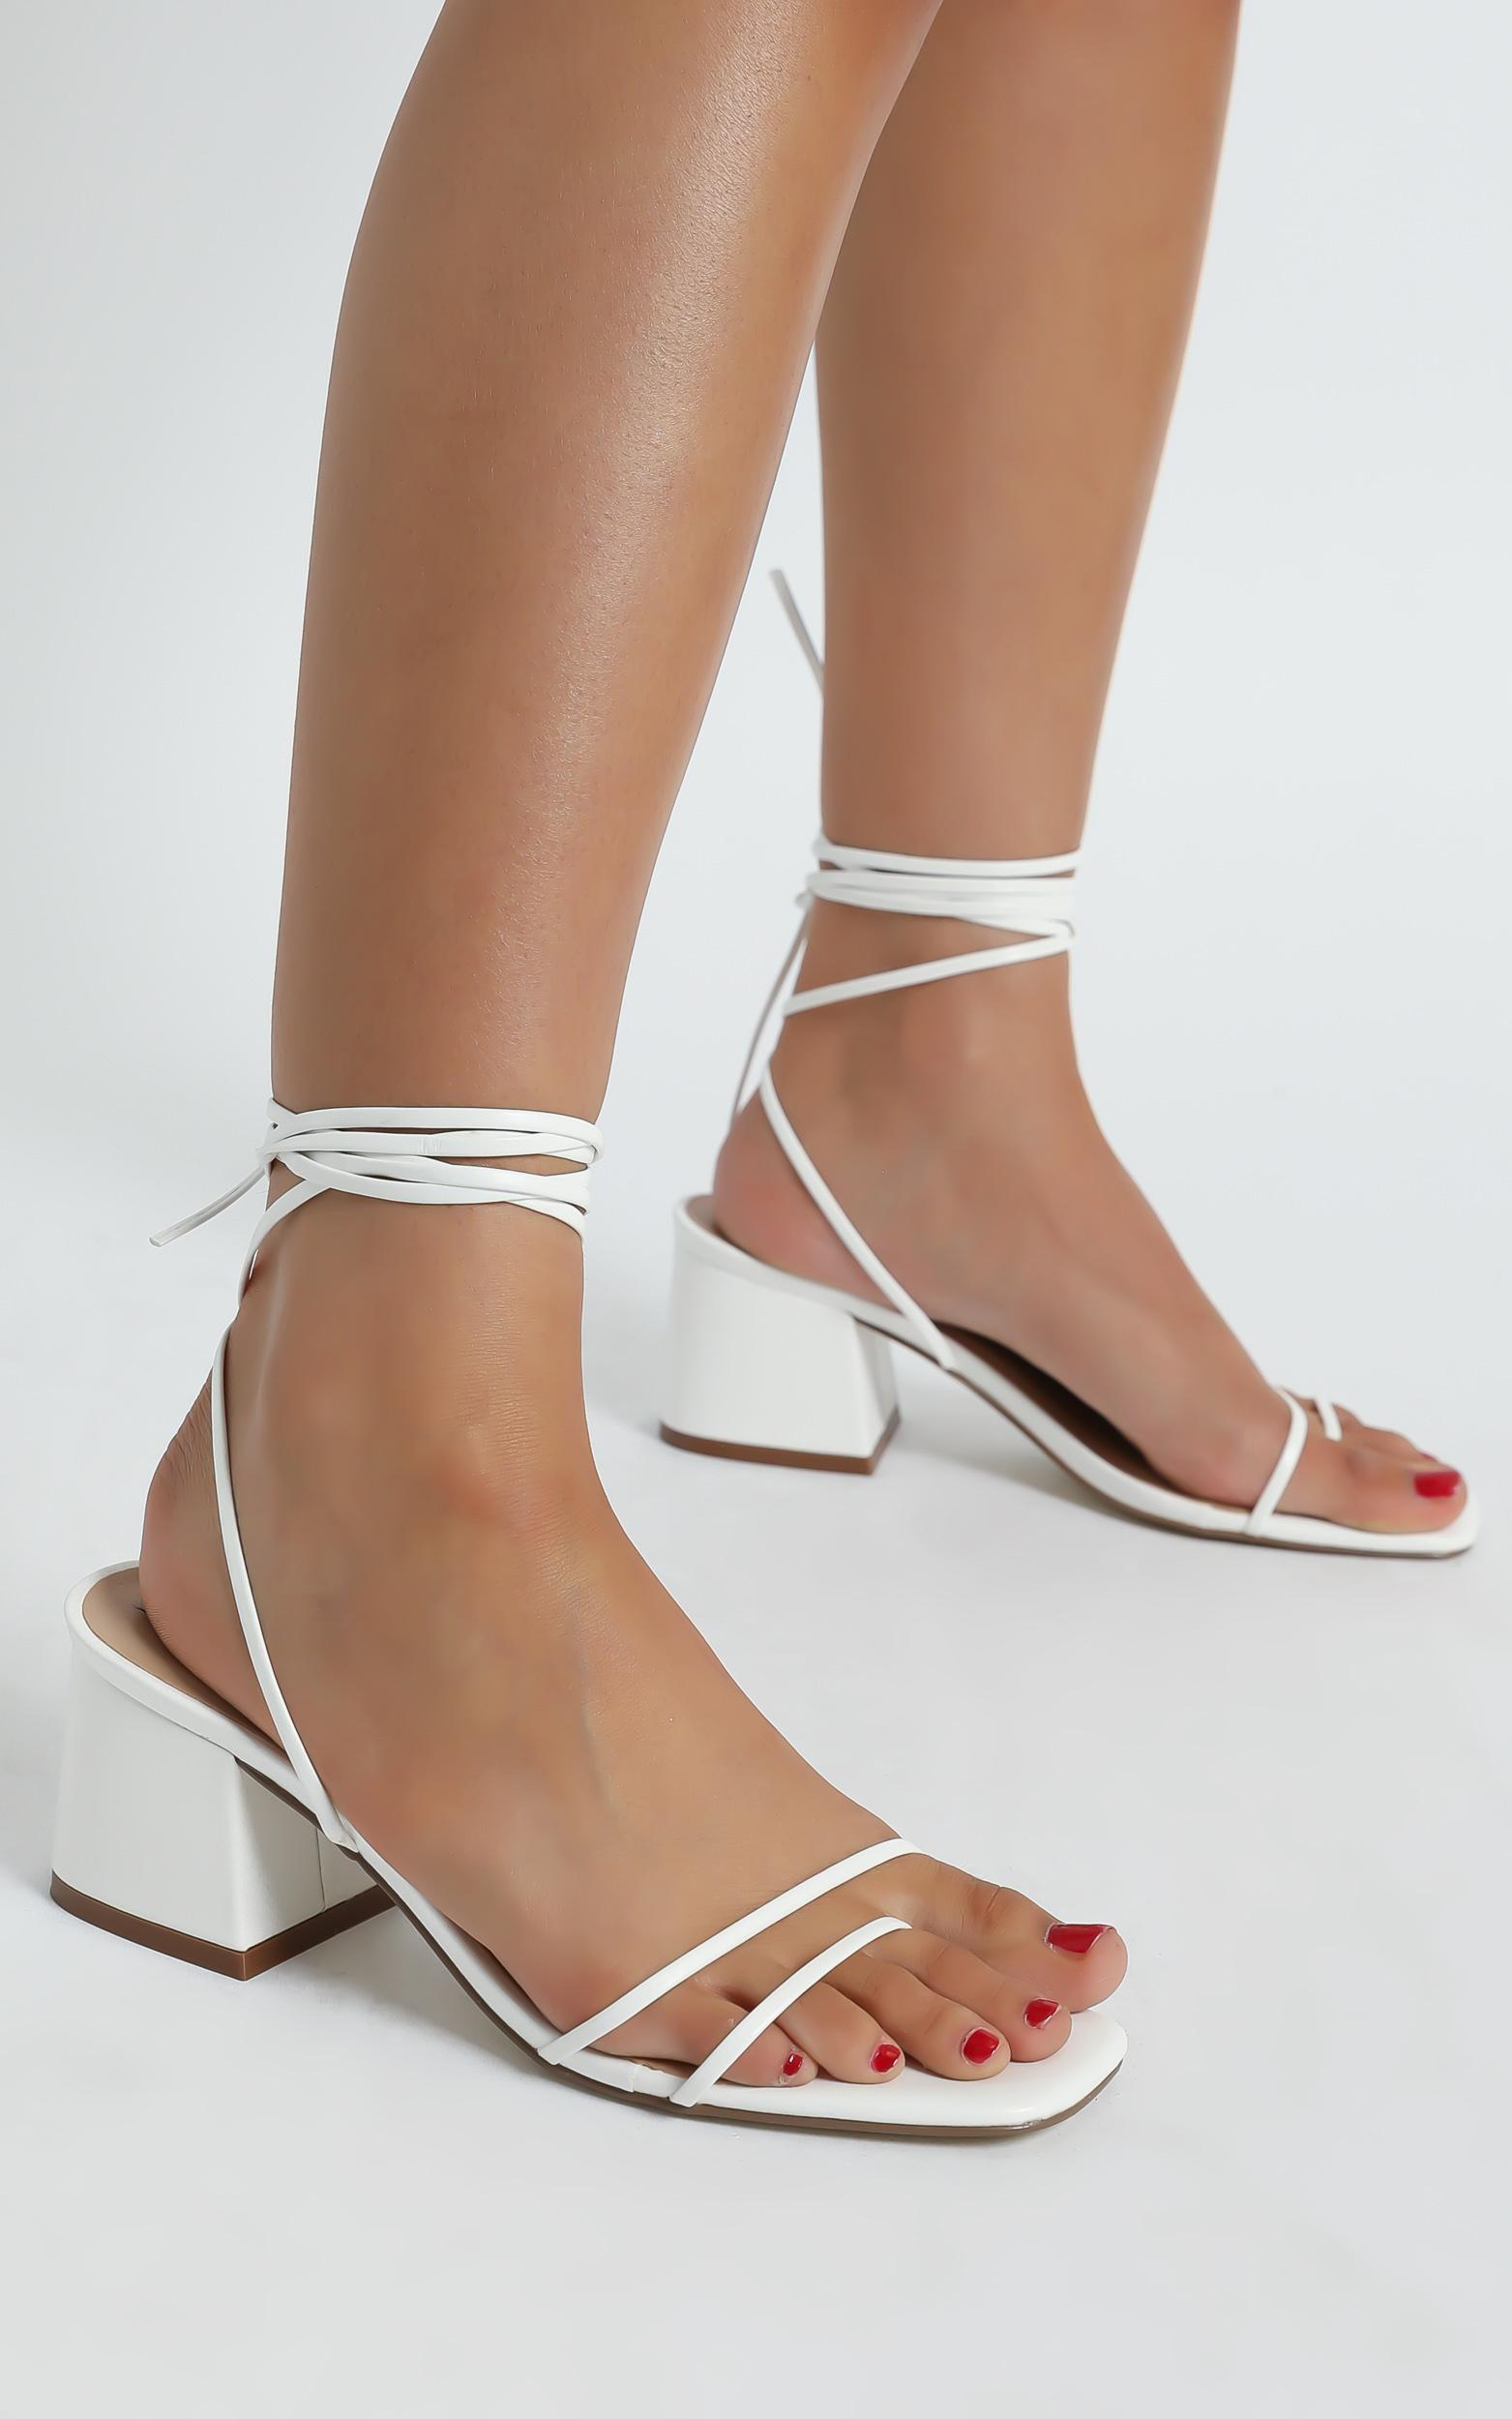 Therapy - Juniper Heels in White - 5, White, hi-res image number null